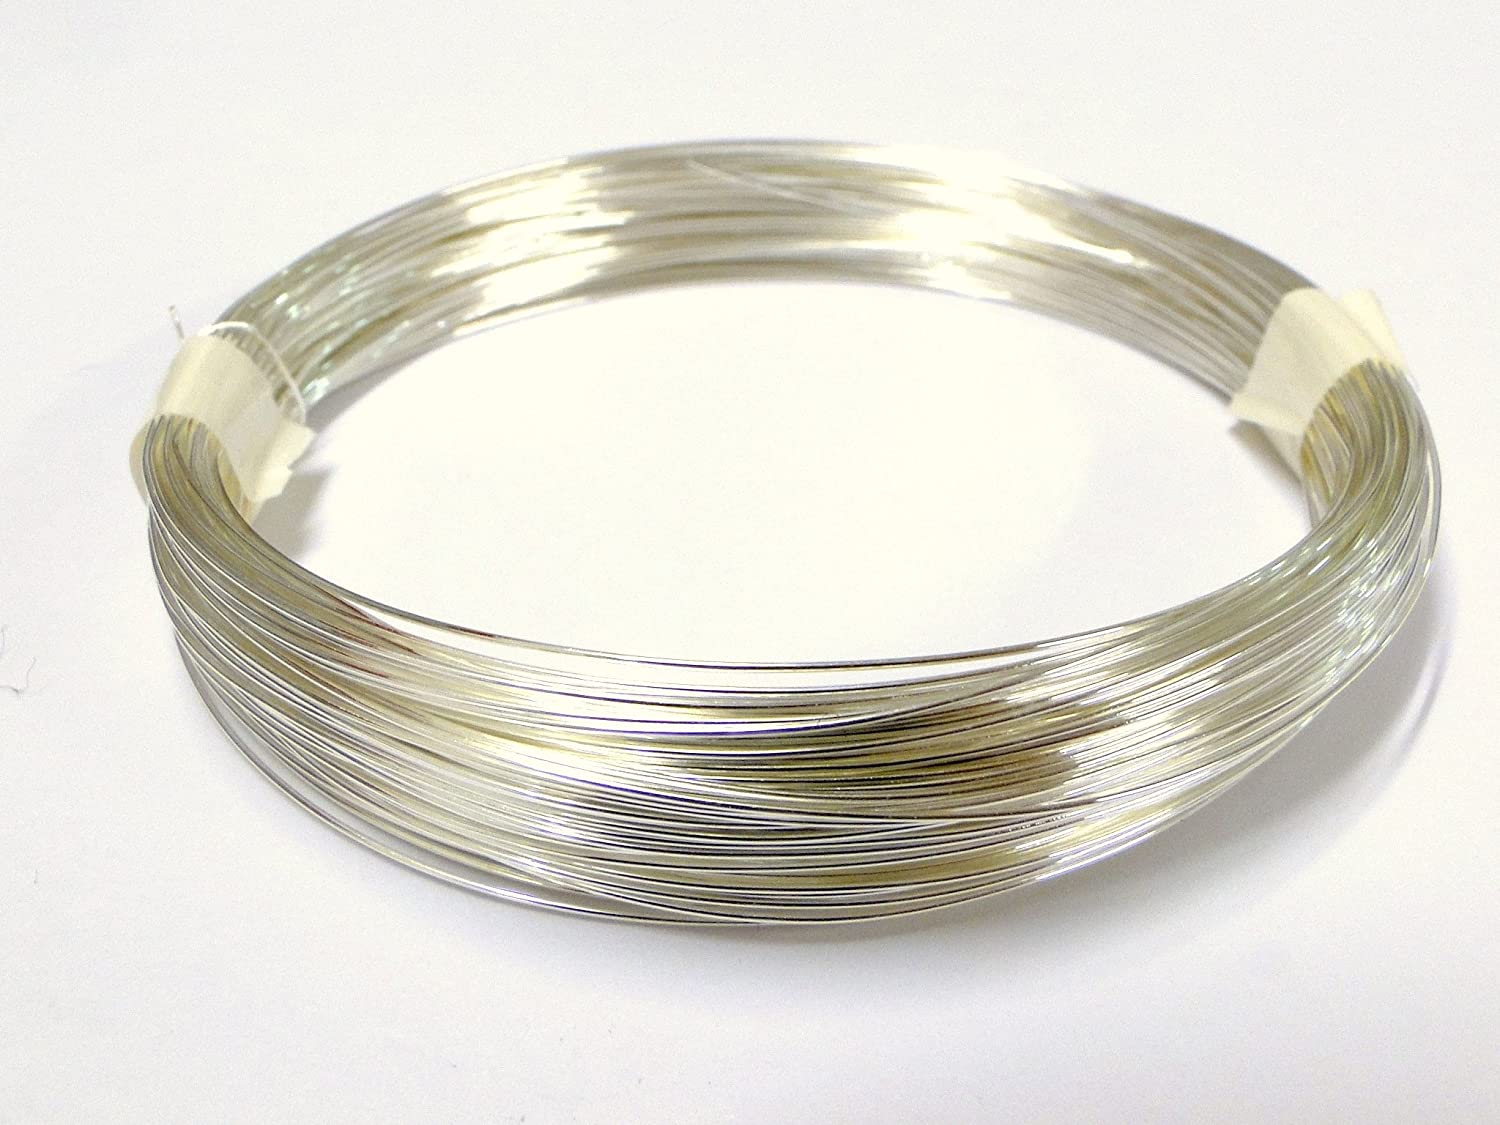 1 Spool Silver 0.8mm x 6 Meters Jewellery Craft Beading Wire Tiara Wrap Memory Copper Brass Metal Findings Habercrafts